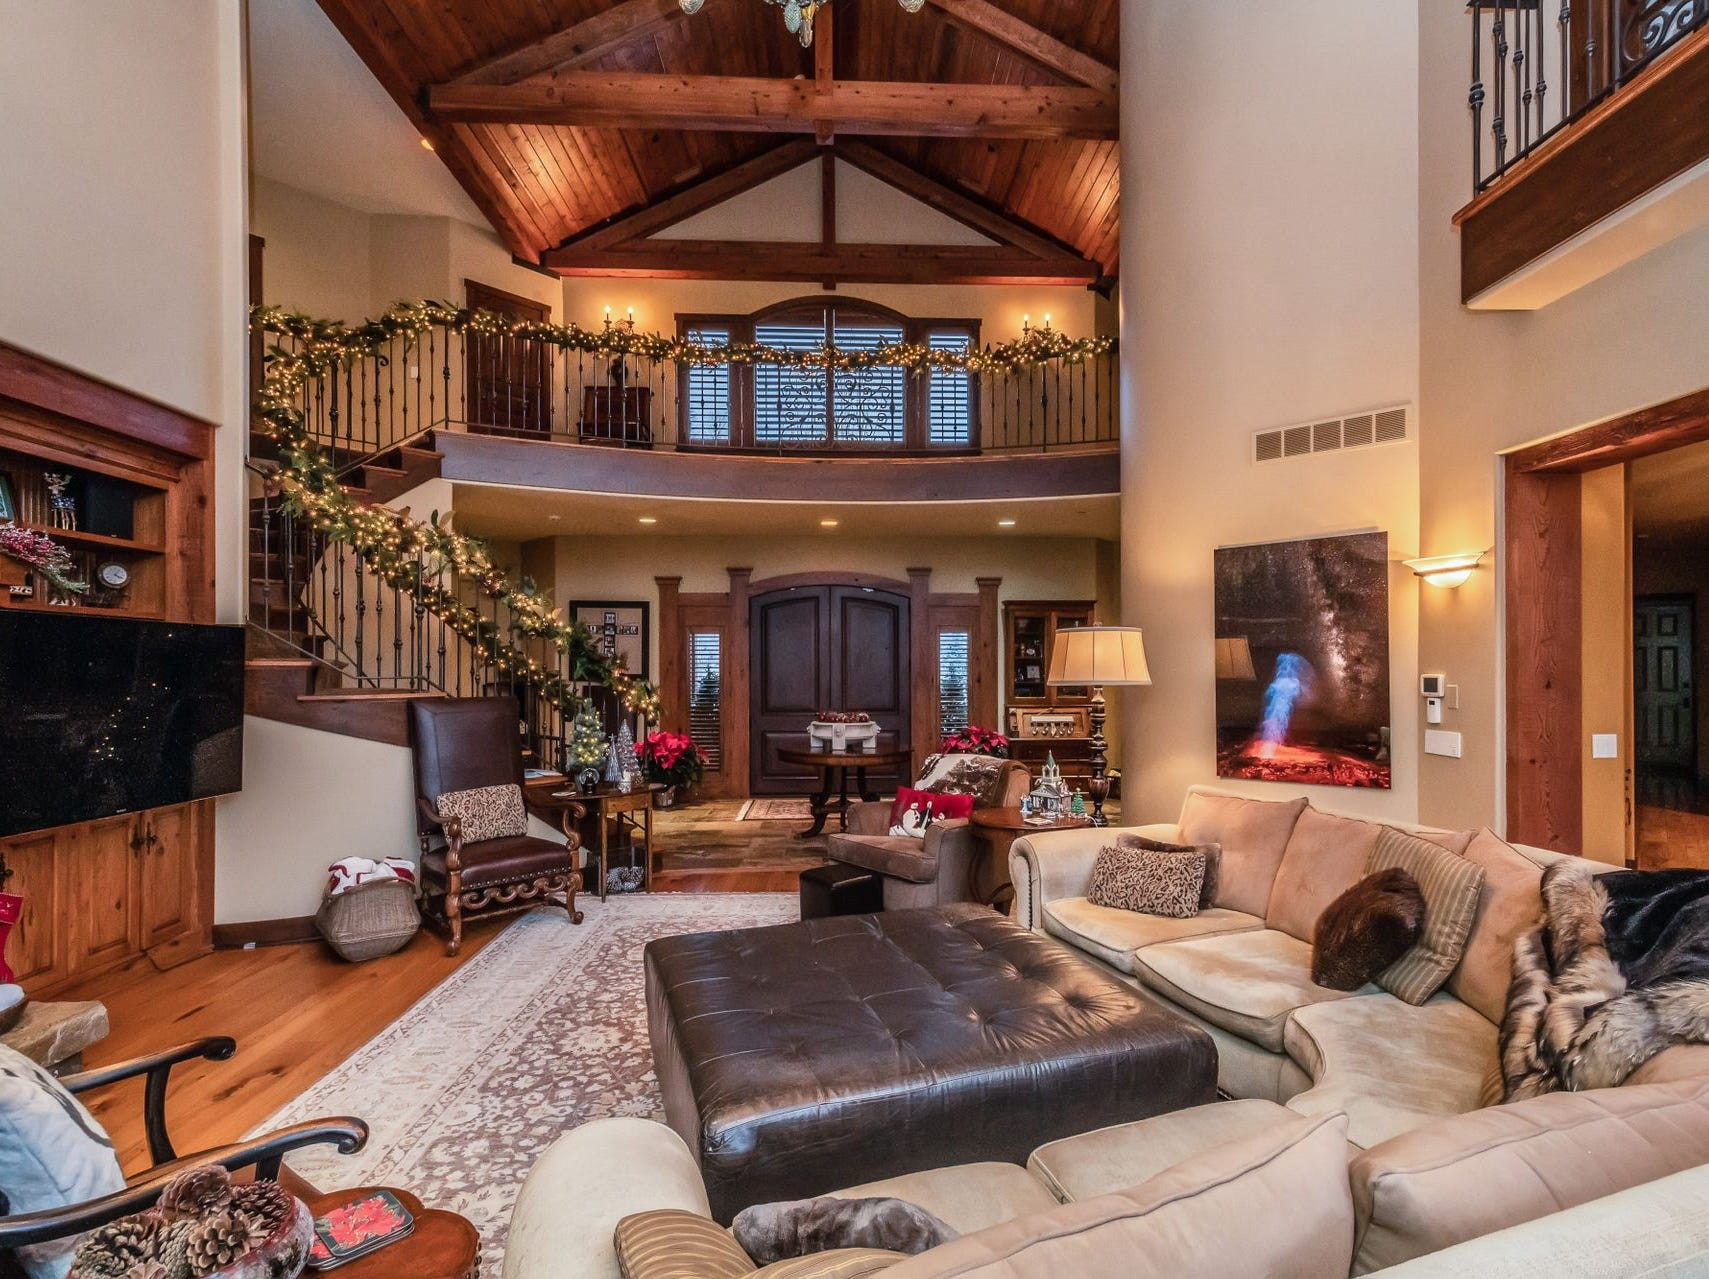 Located in Urbandale, this home with 10,000 square feet of living space is available for just below $2 million.